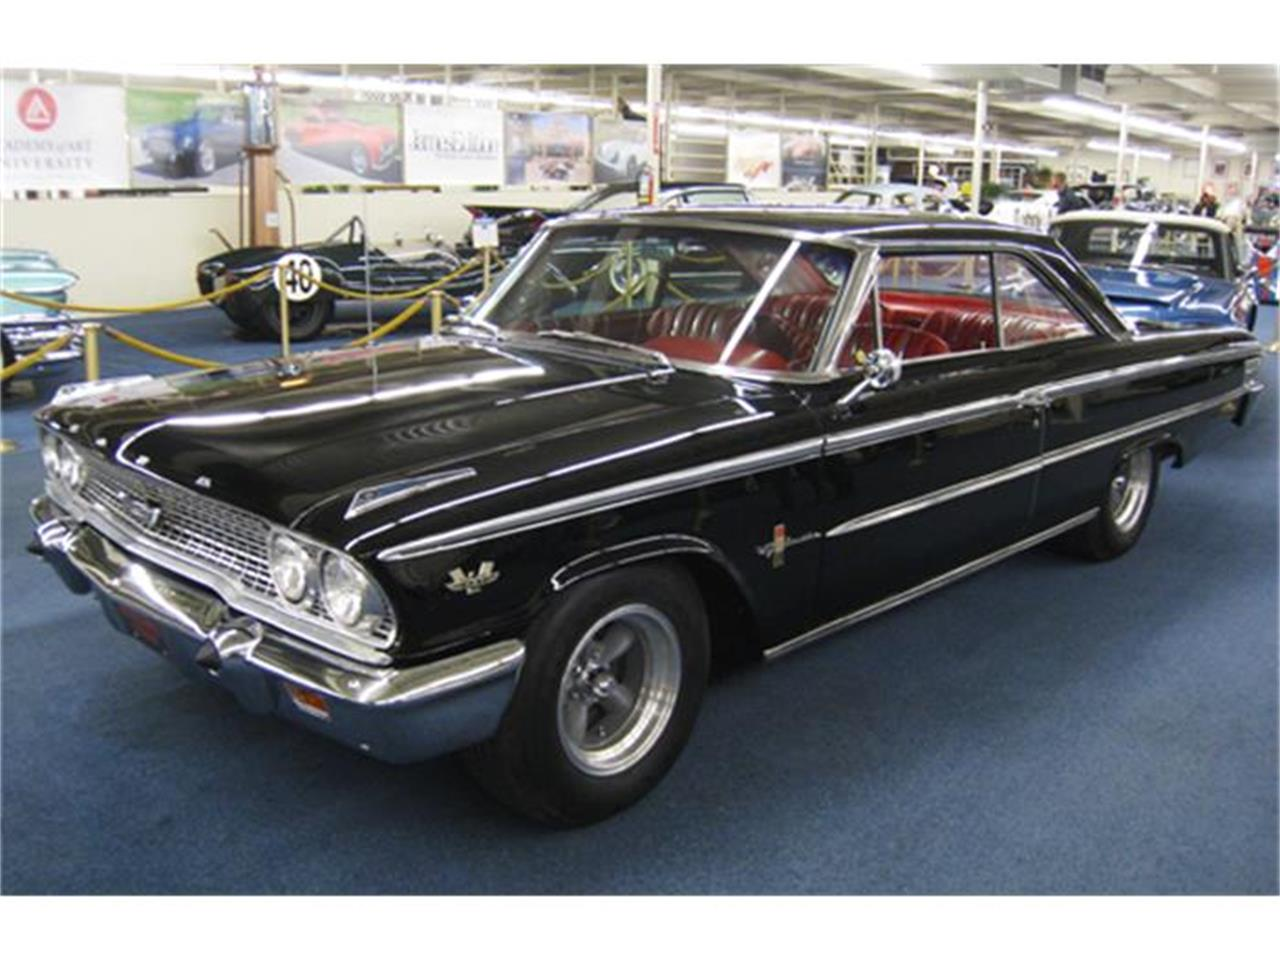 for sale 1963 ford galaxie 500 xl in las vegas nevada. Cars Review. Best American Auto & Cars Review